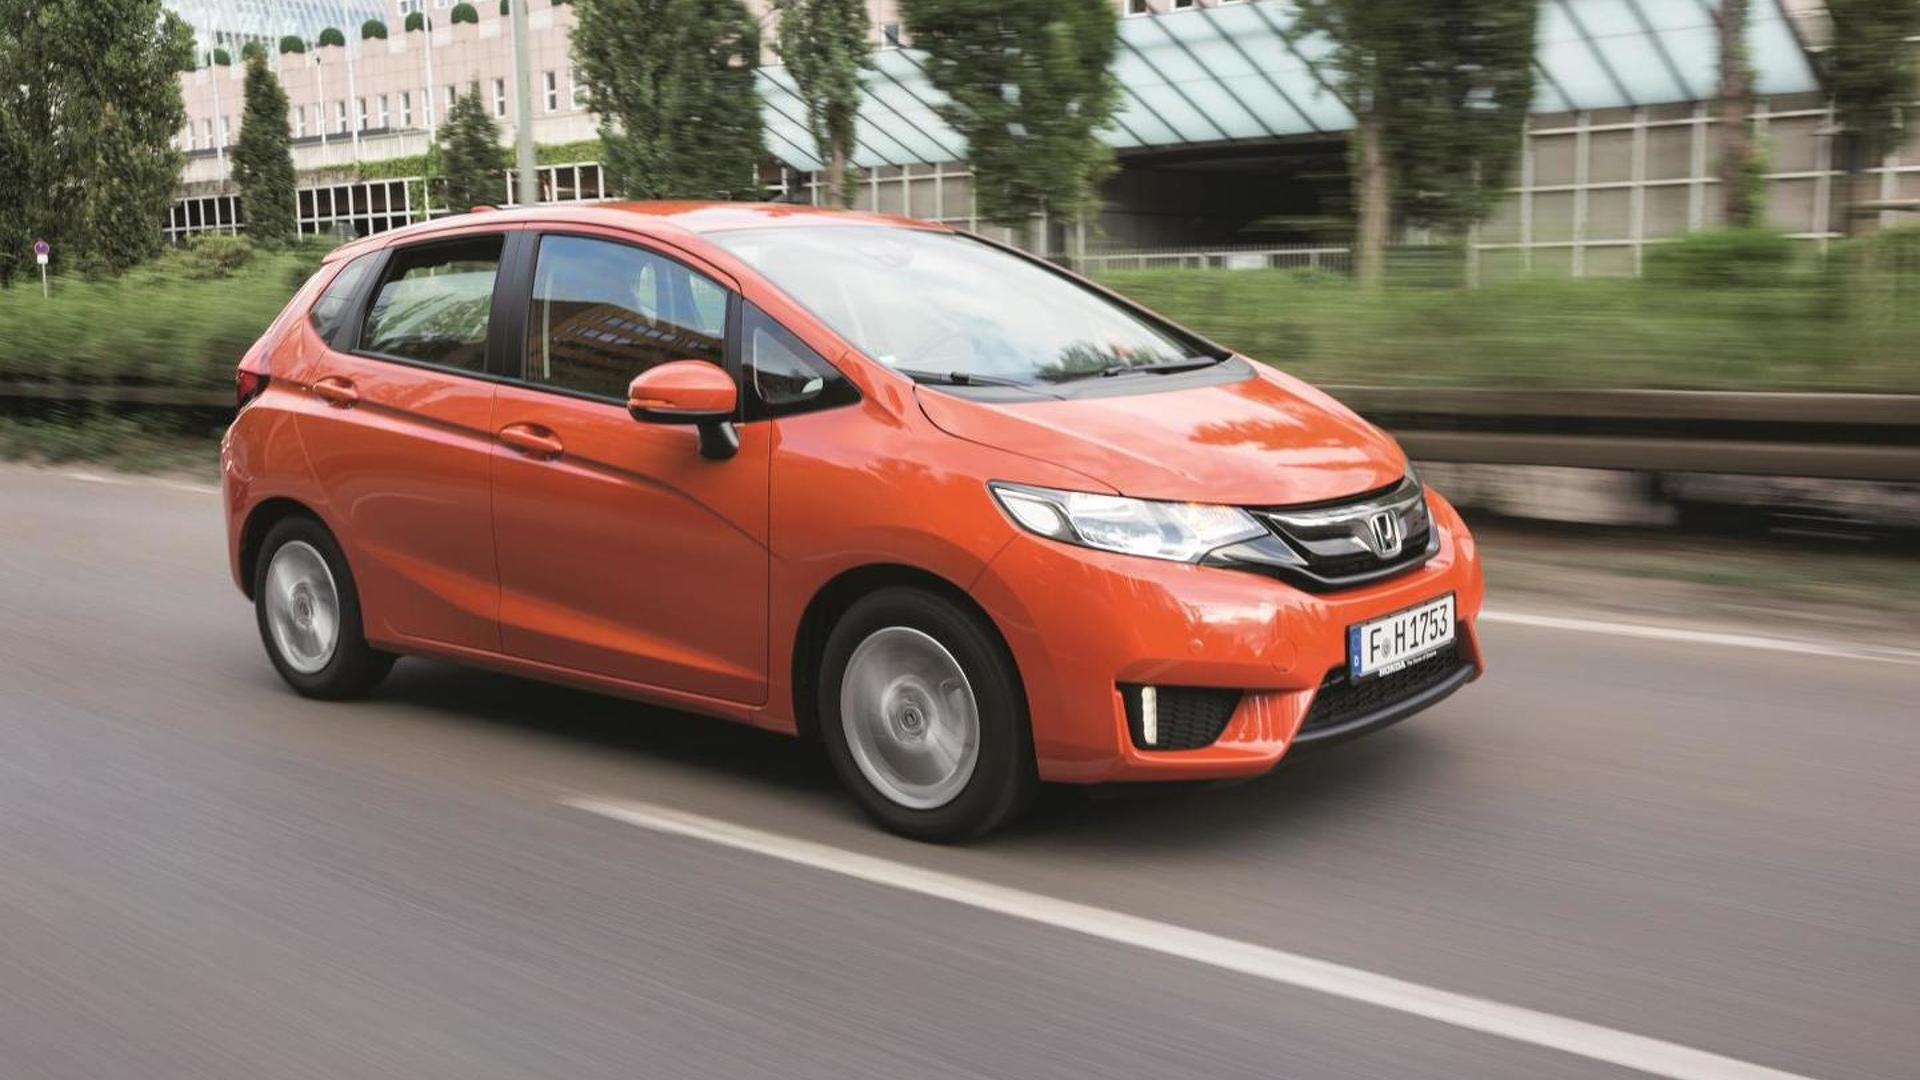 Honda Jazz UK pricing announced, new pics released